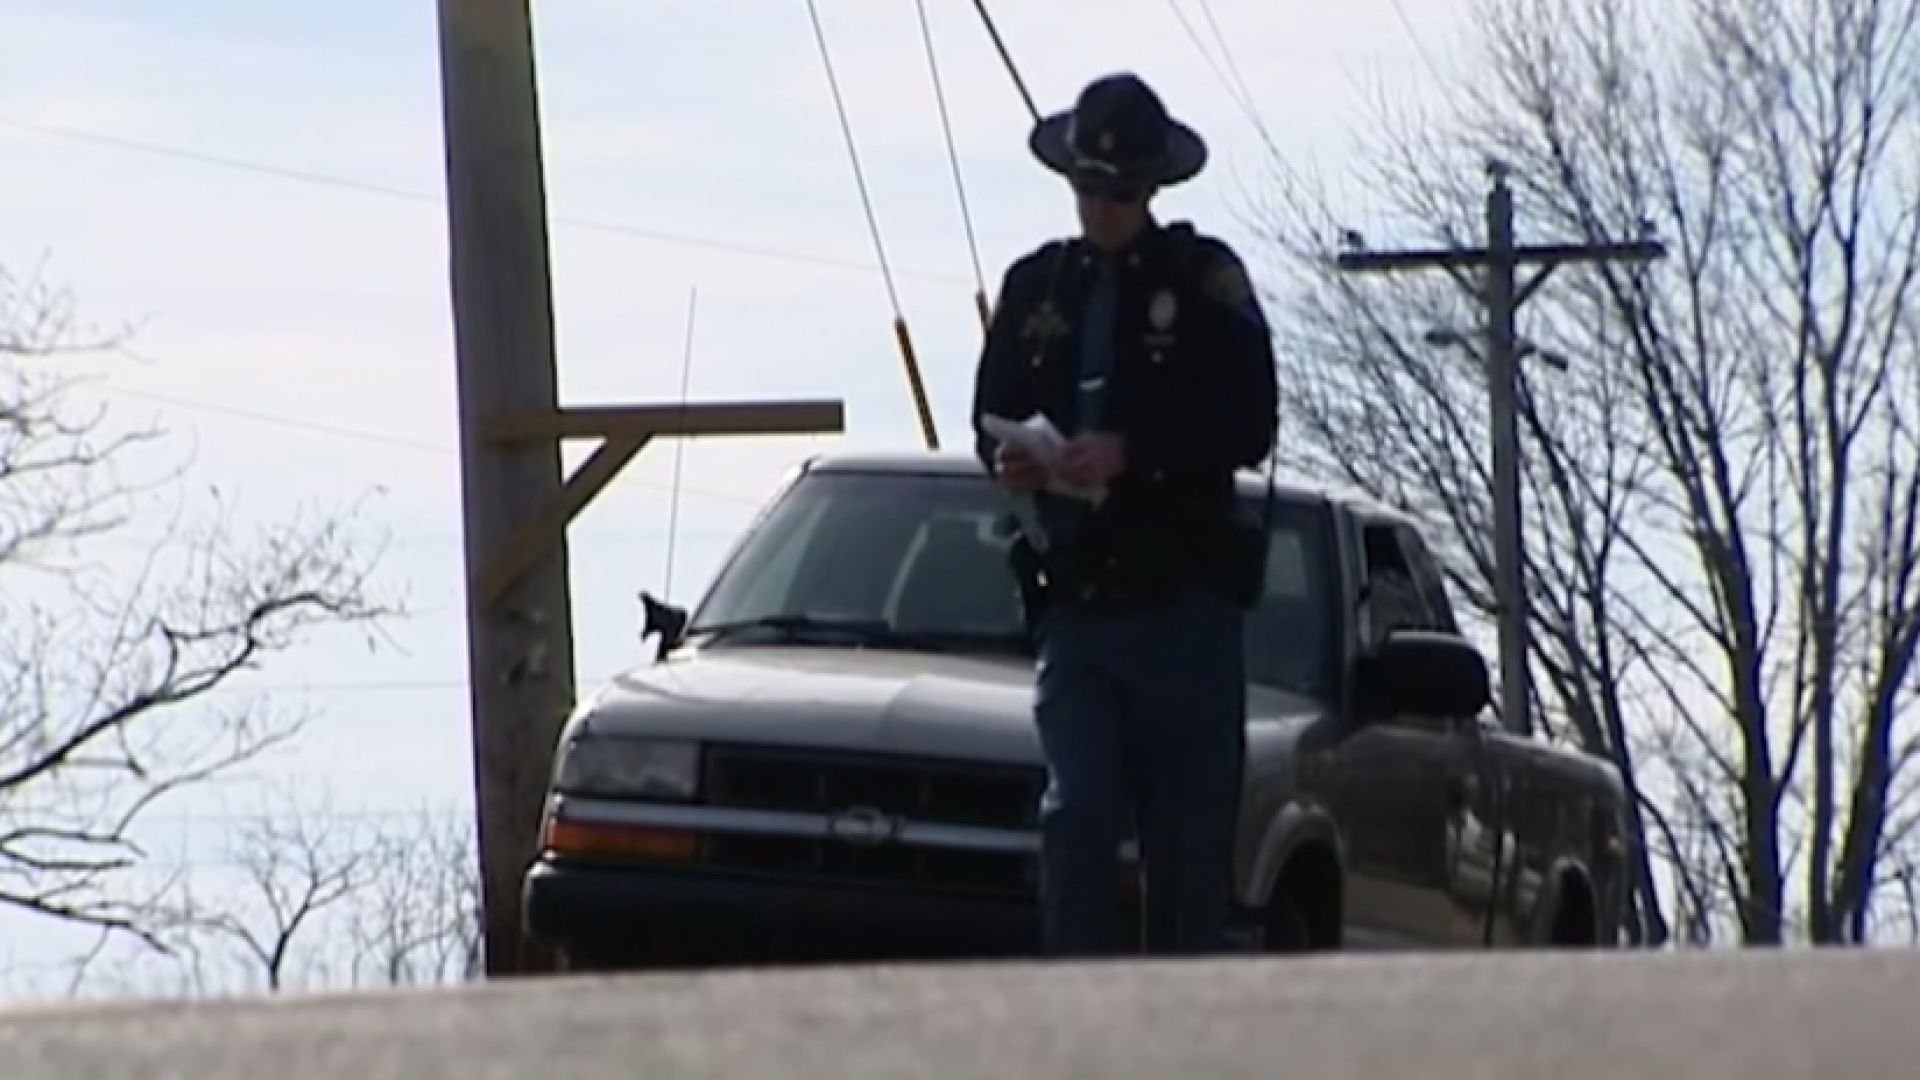 An armed witness stopped to help an Indiana conservation officer under attack. (WLWT)